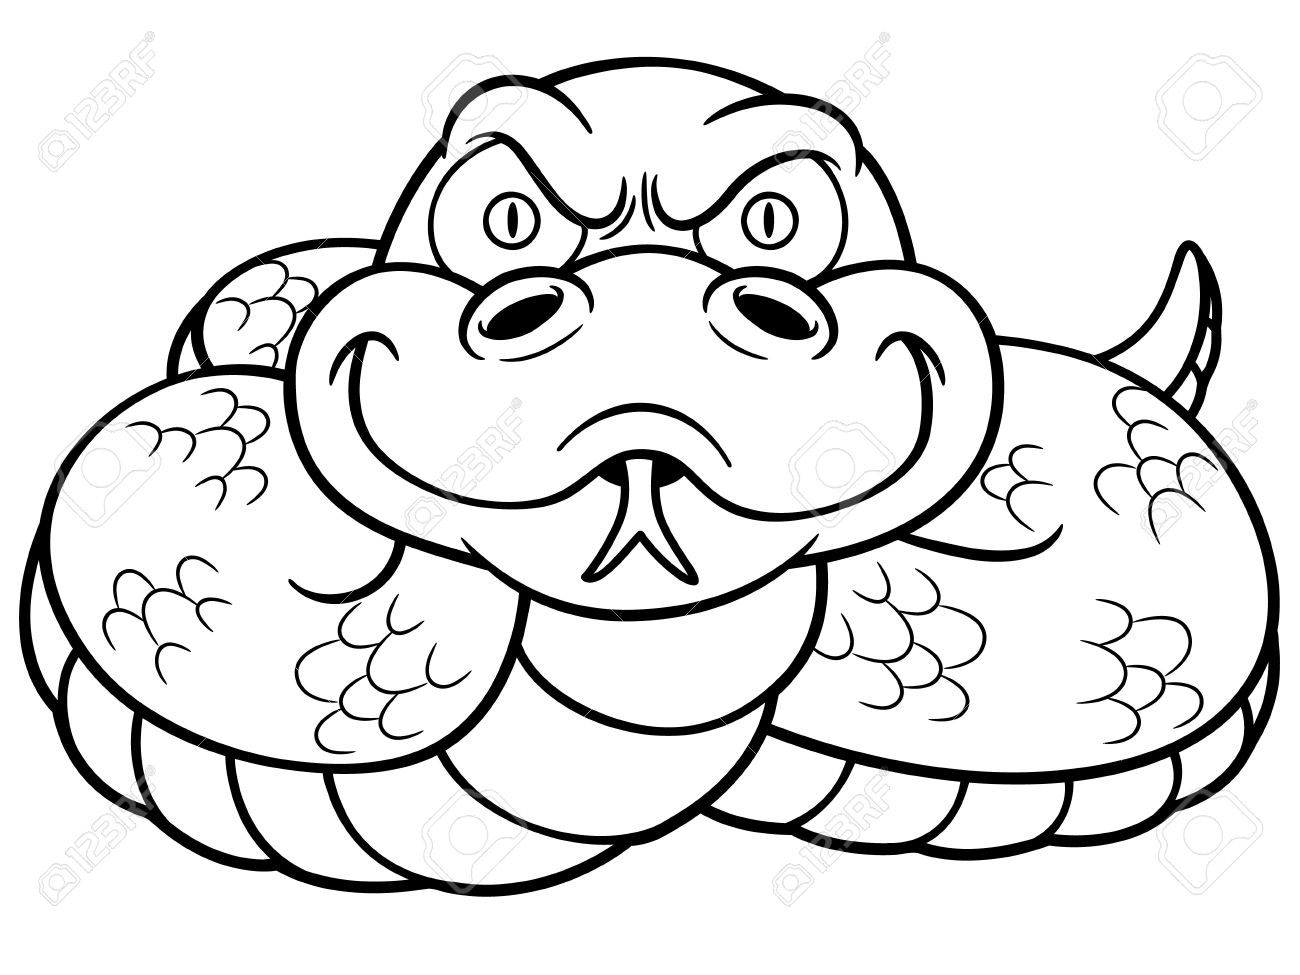 Vector Illustration Of Cartoon Snake - Coloring Book Royalty Free ...